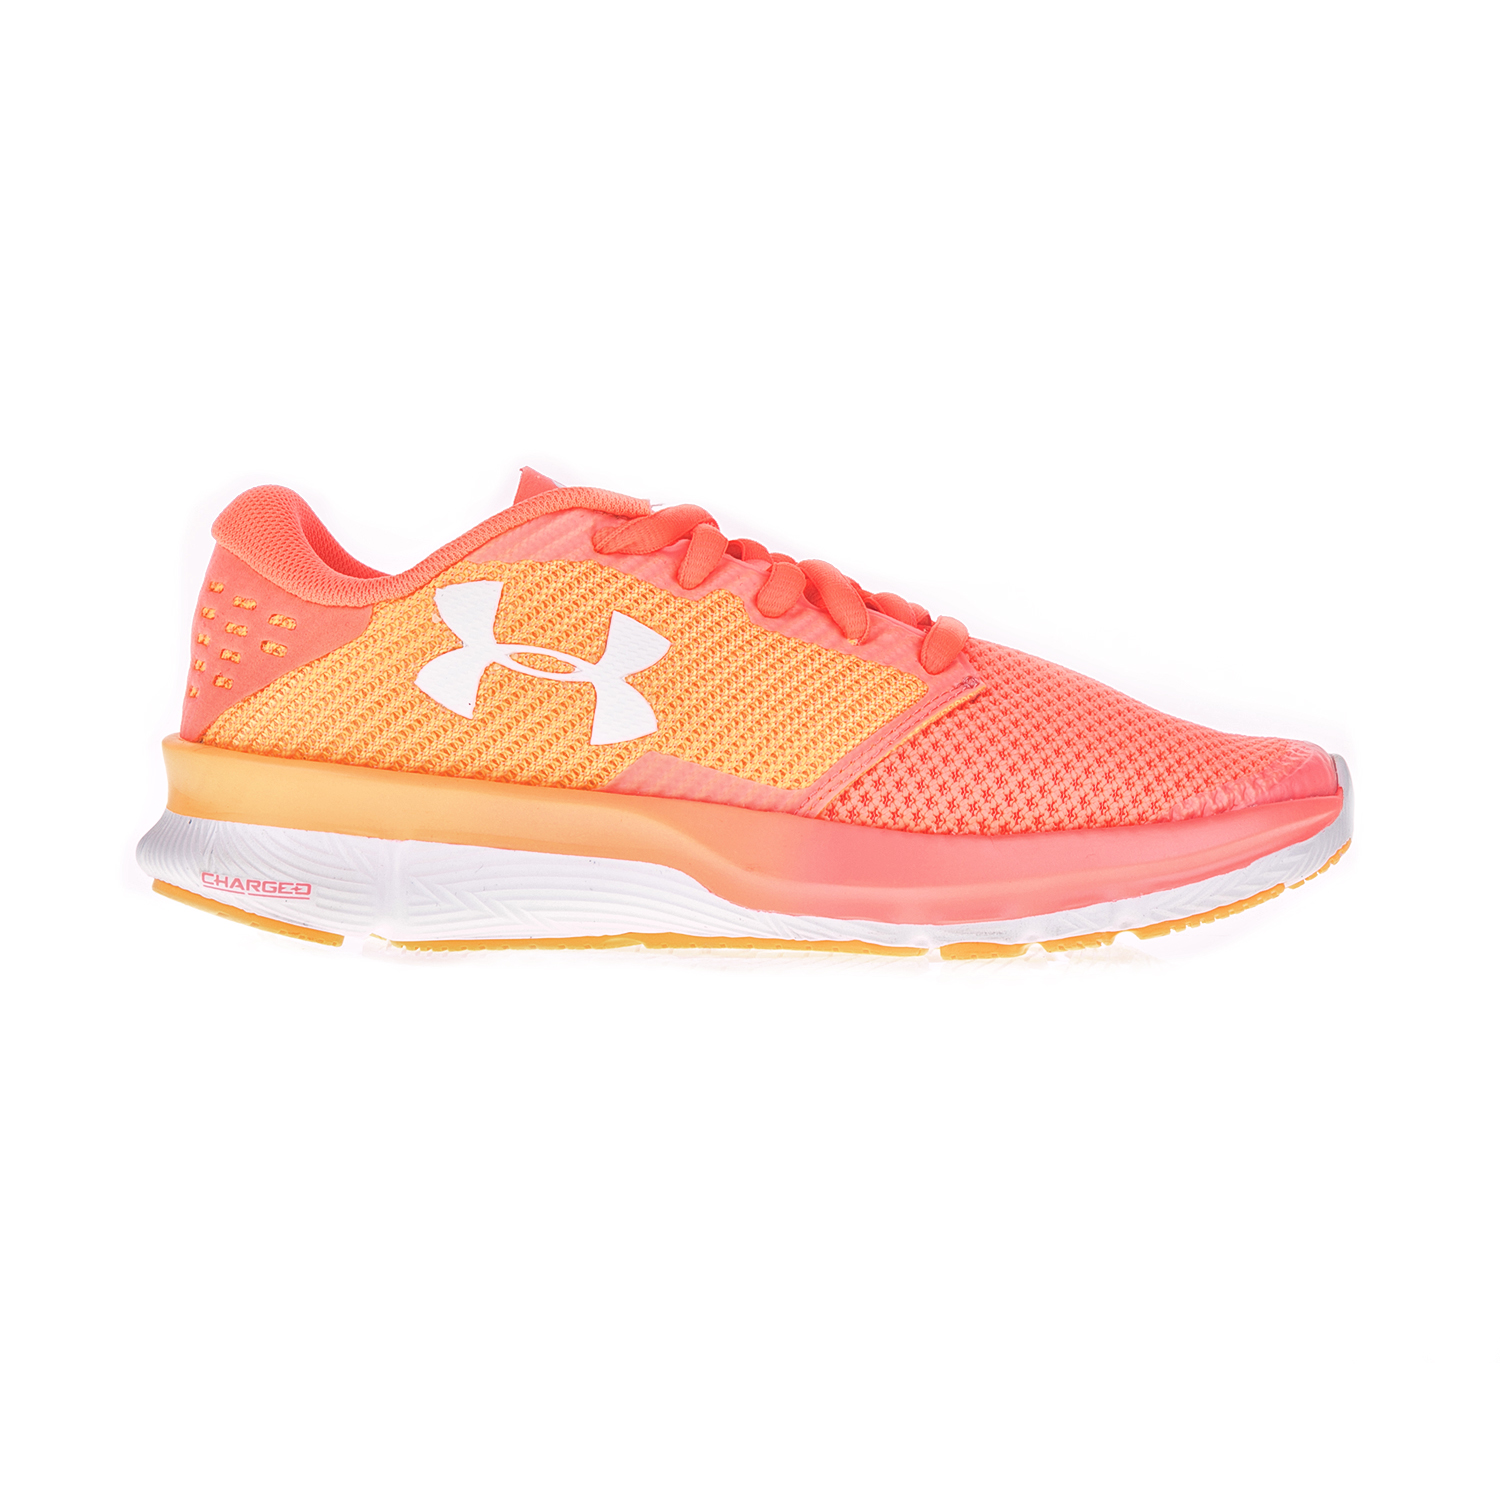 7d55154d509 UNDER ARMOUR - Γυναικεία αθλητικά παπούτσια UNDER ARMOUR CHARGED RECKLESS  πορτοκαλί